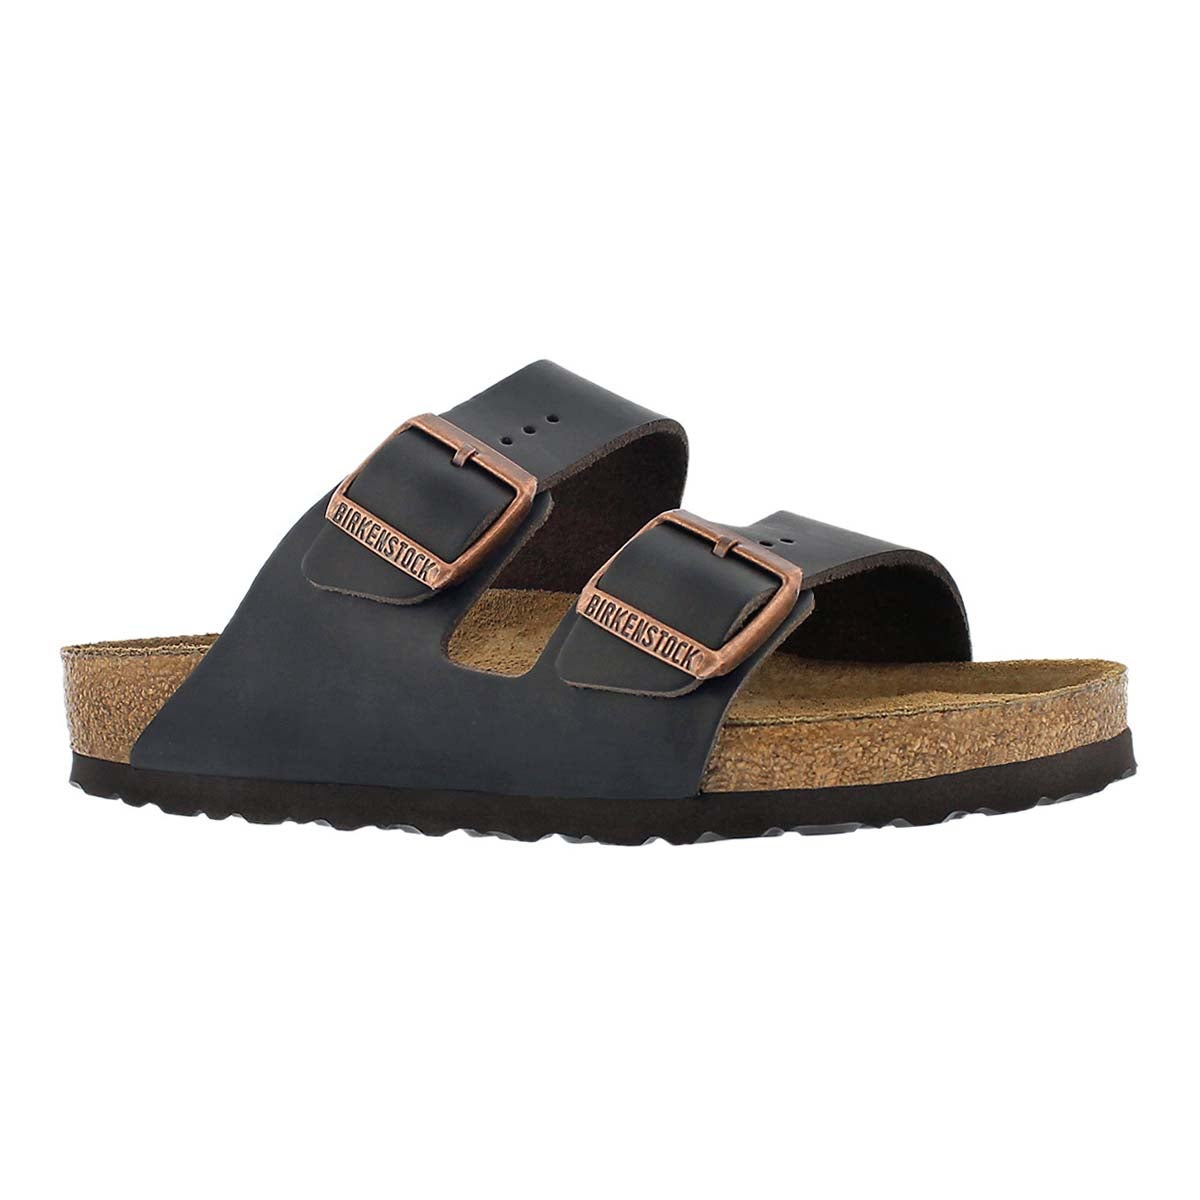 Women's ARIZONA soft footbed brown 2 strap sandals